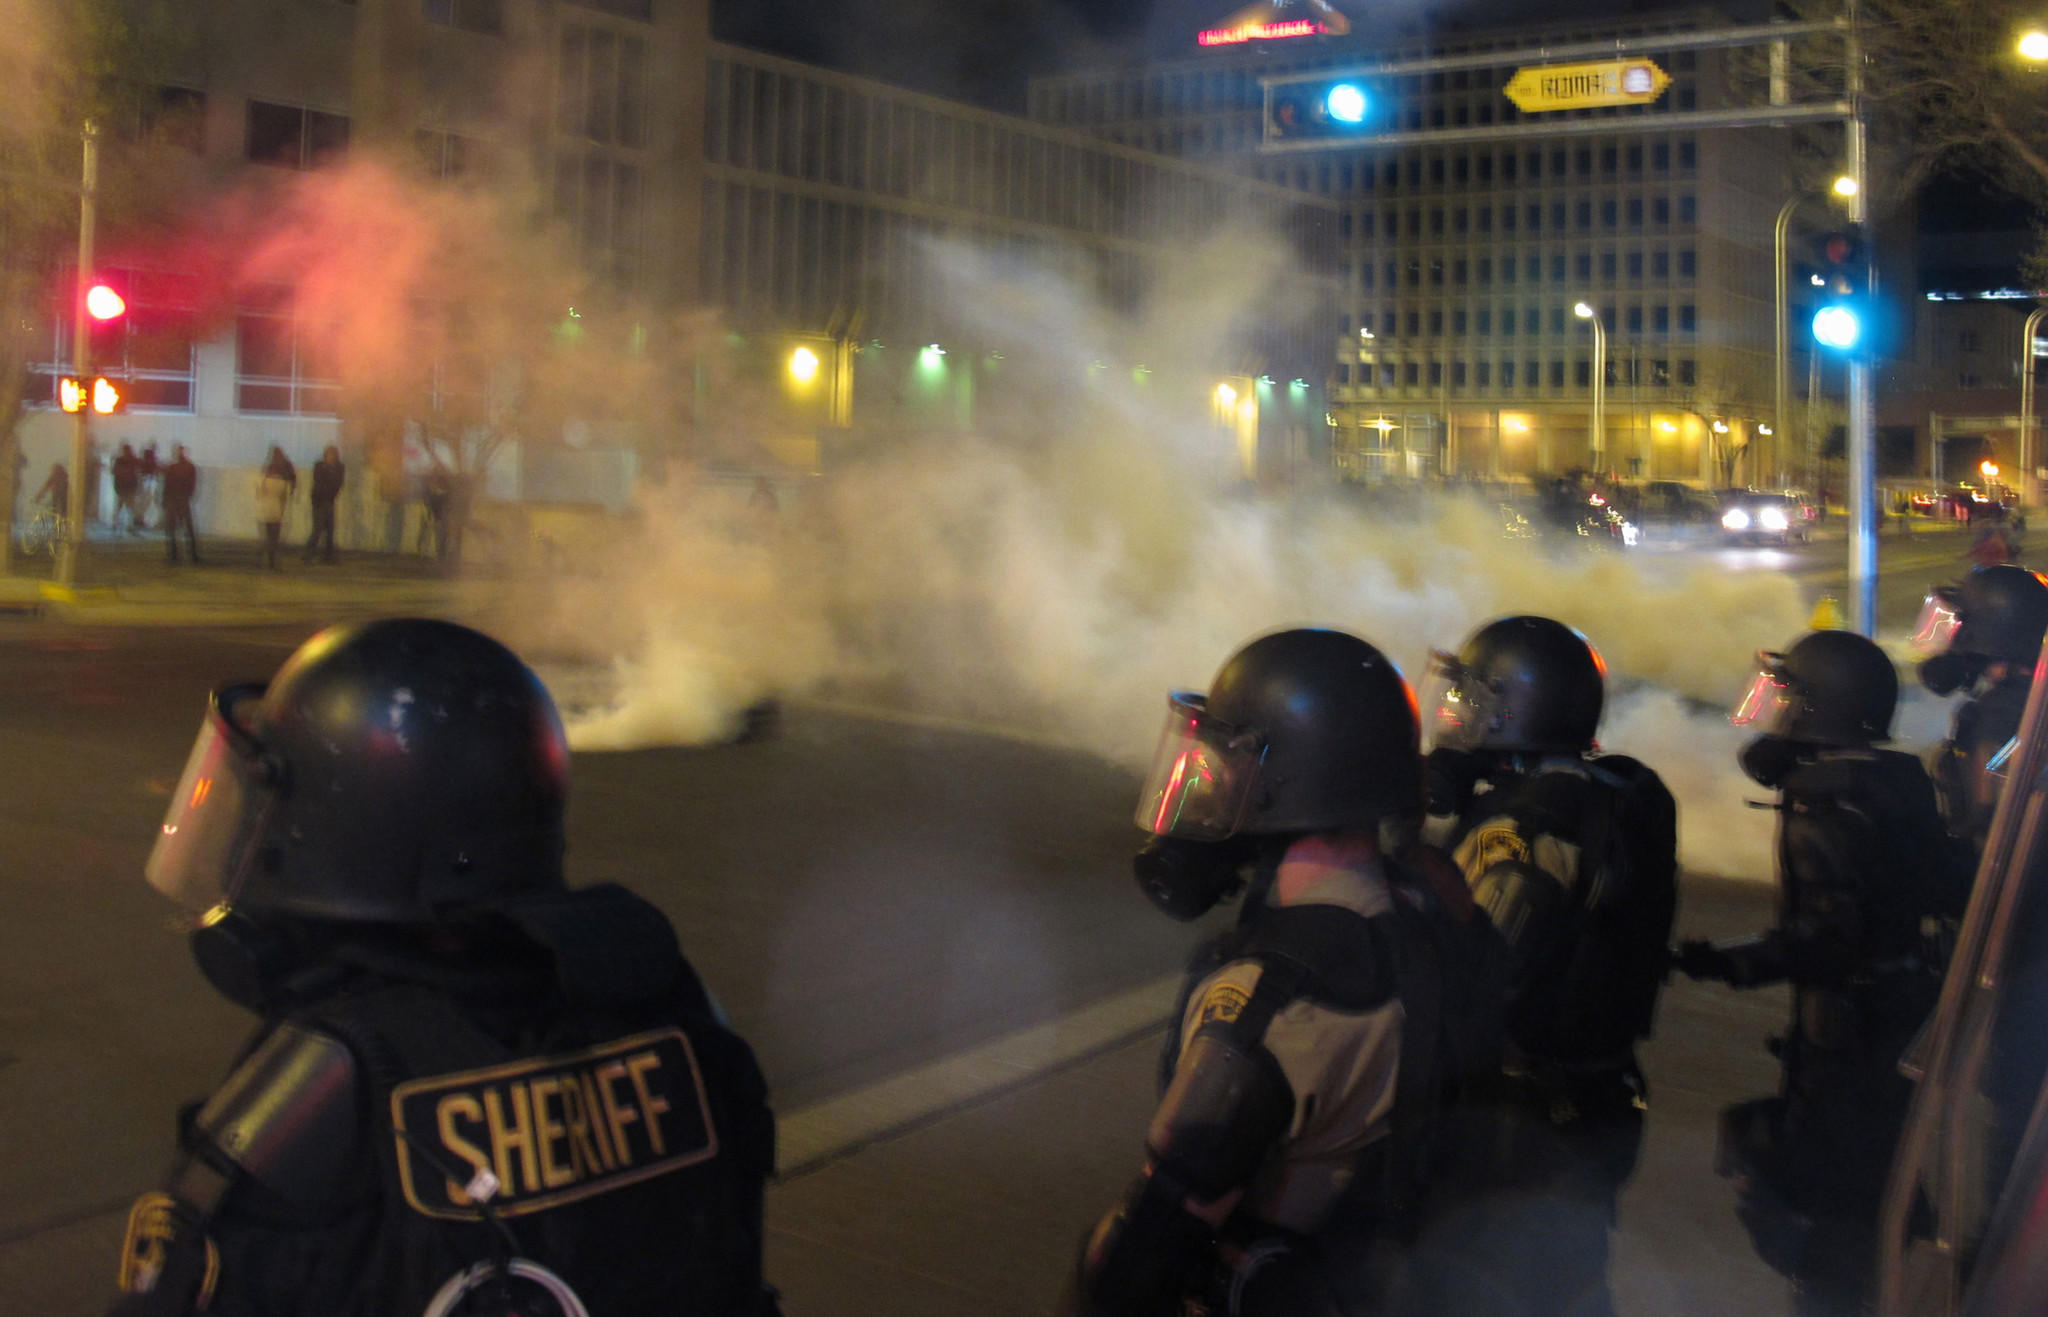 Riot police launch tear gas toward activists in downtown Albuquerque following a Sunday protest around the city over a series of deadly police shootings.